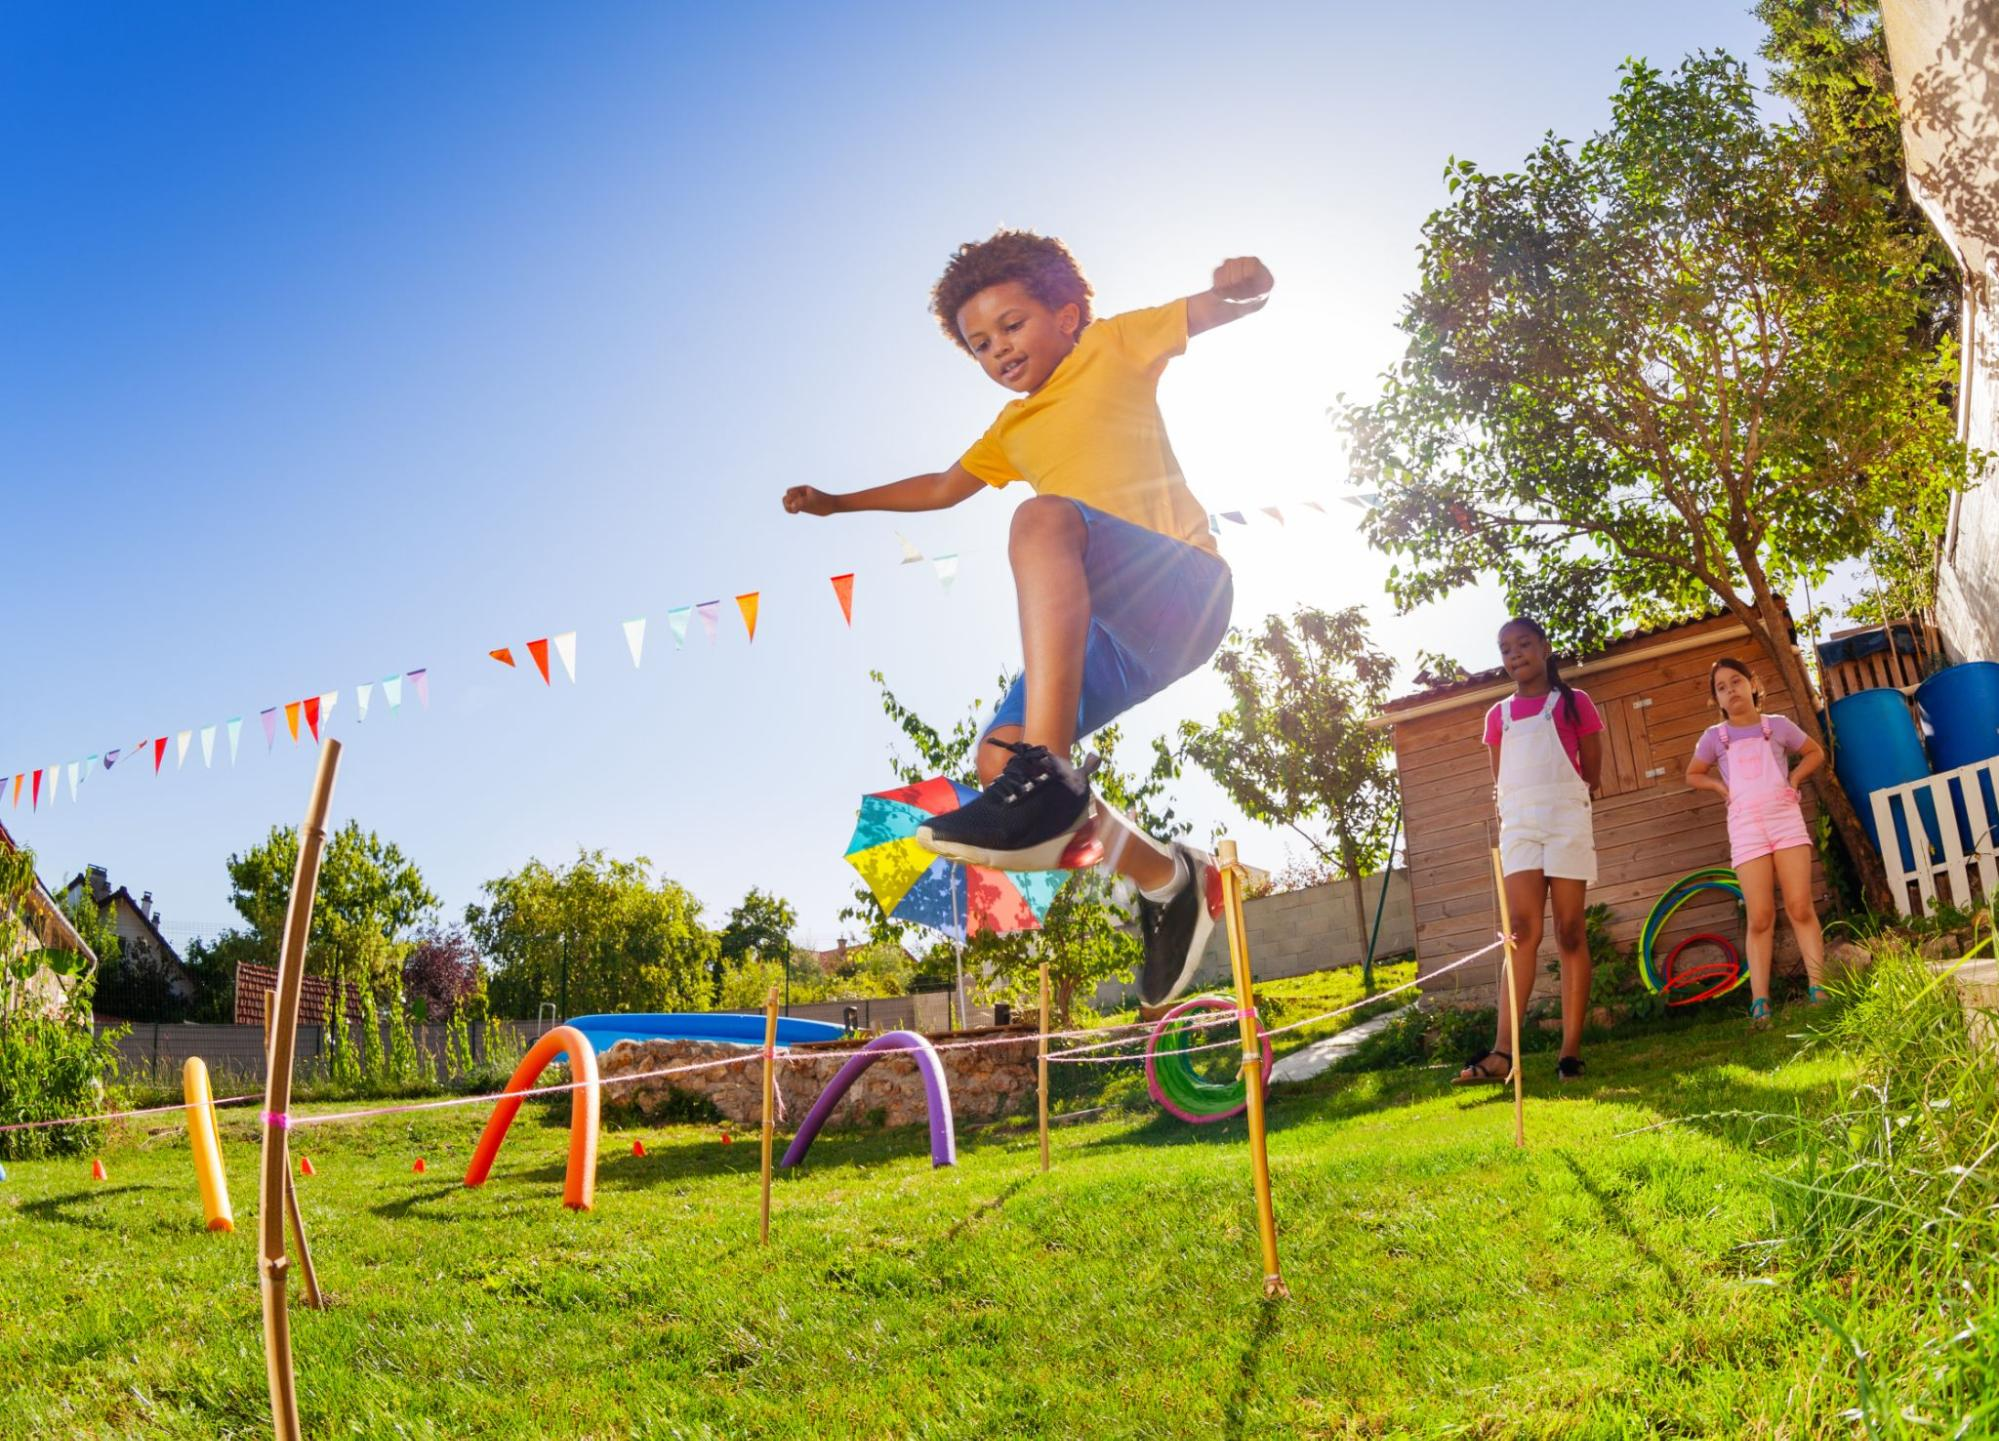 Family activities on a budget: A boy runs through an obstacle course